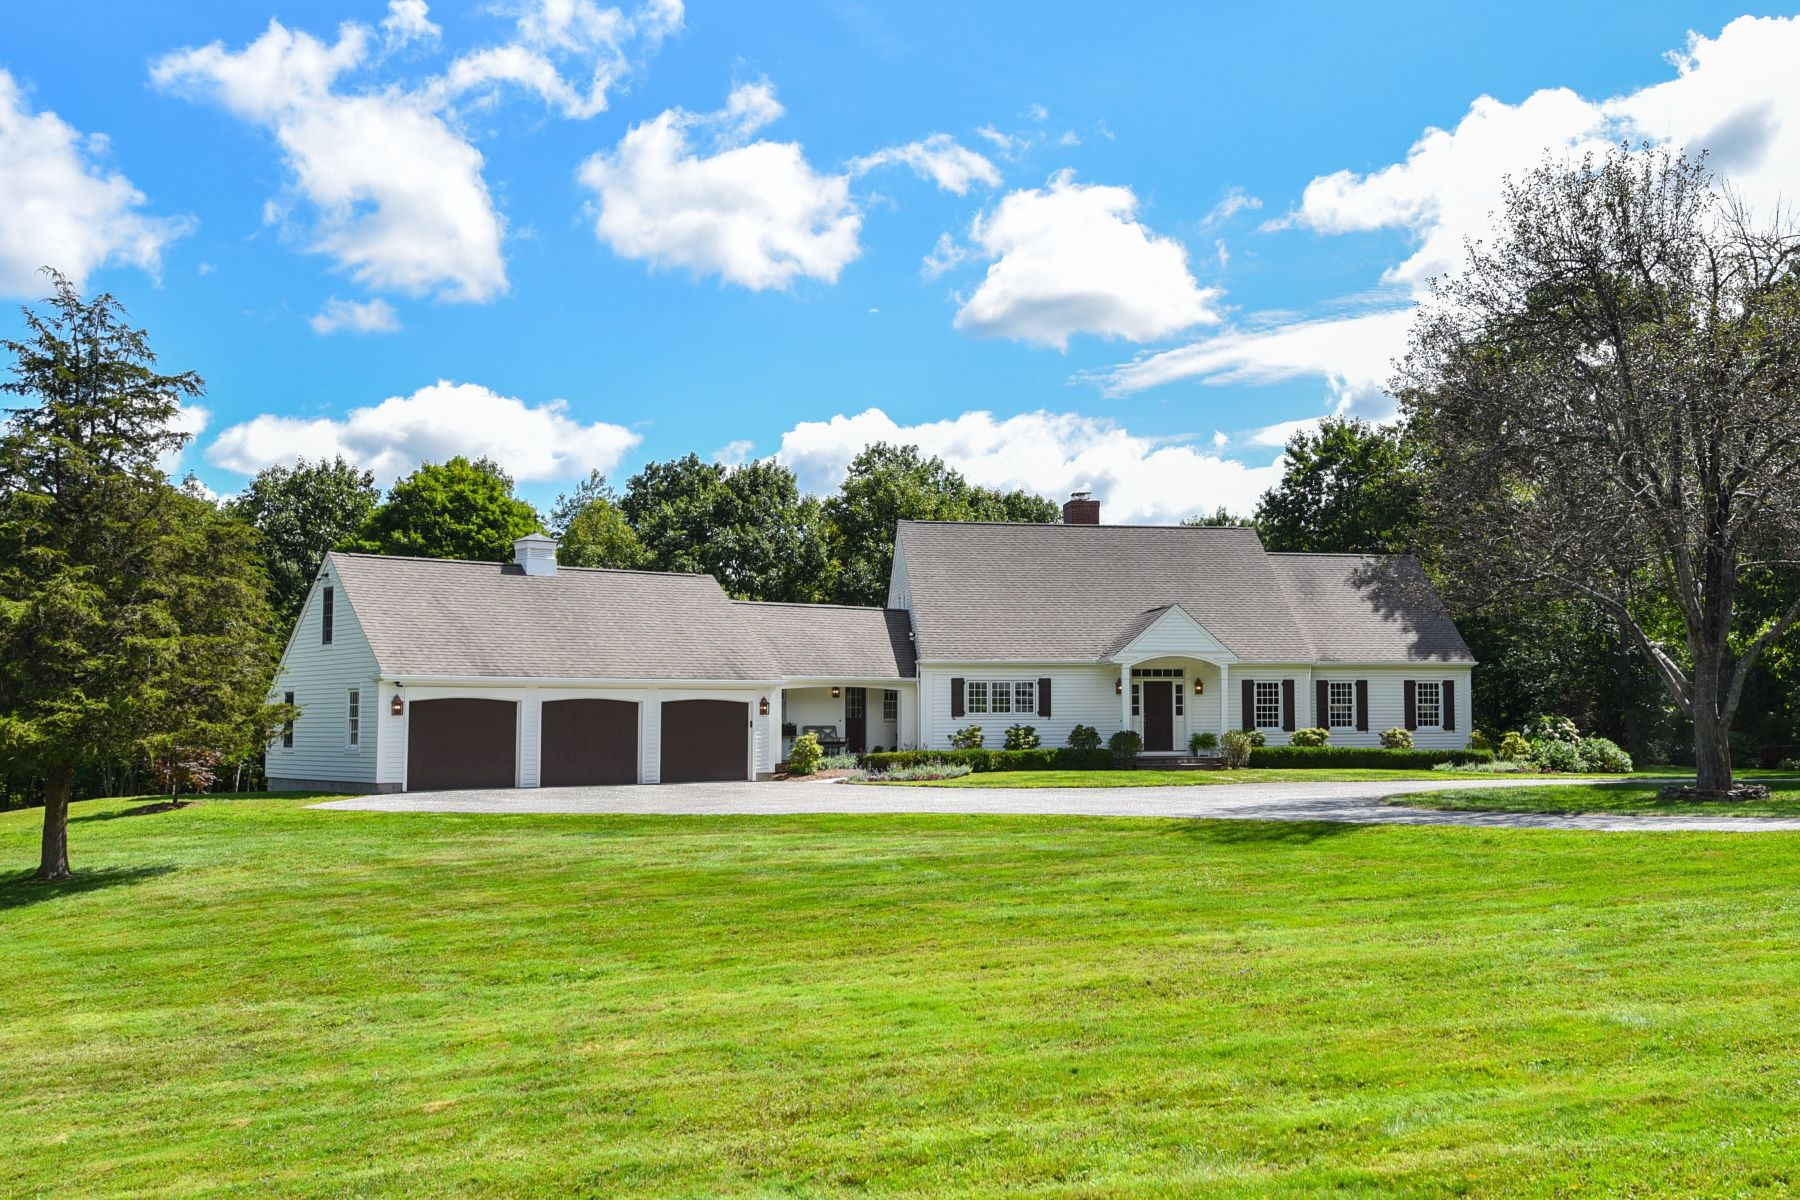 Single Family Home for Sale at Newly Renovated Cape, 11 Acres, Pond and Barn 171 Chestnut Hill Rd Litchfield, Connecticut 06759 United States